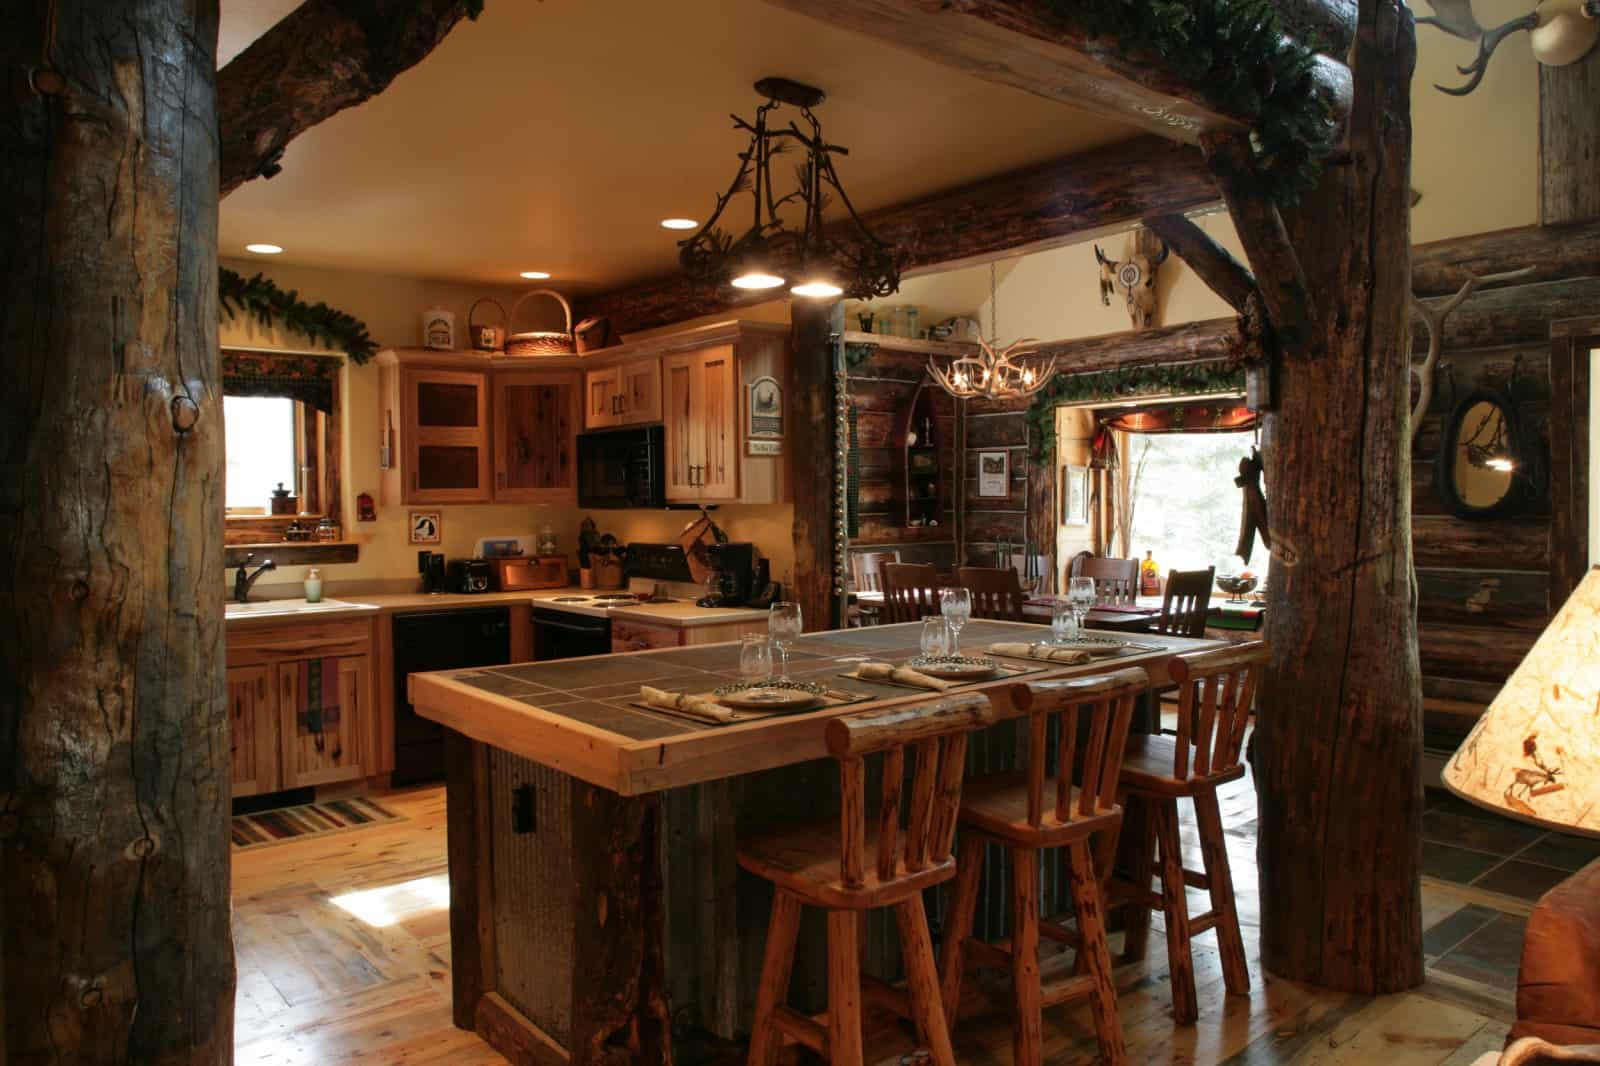 Interior design trends 2017 rustic kitchen decor house for Looking for kitchen